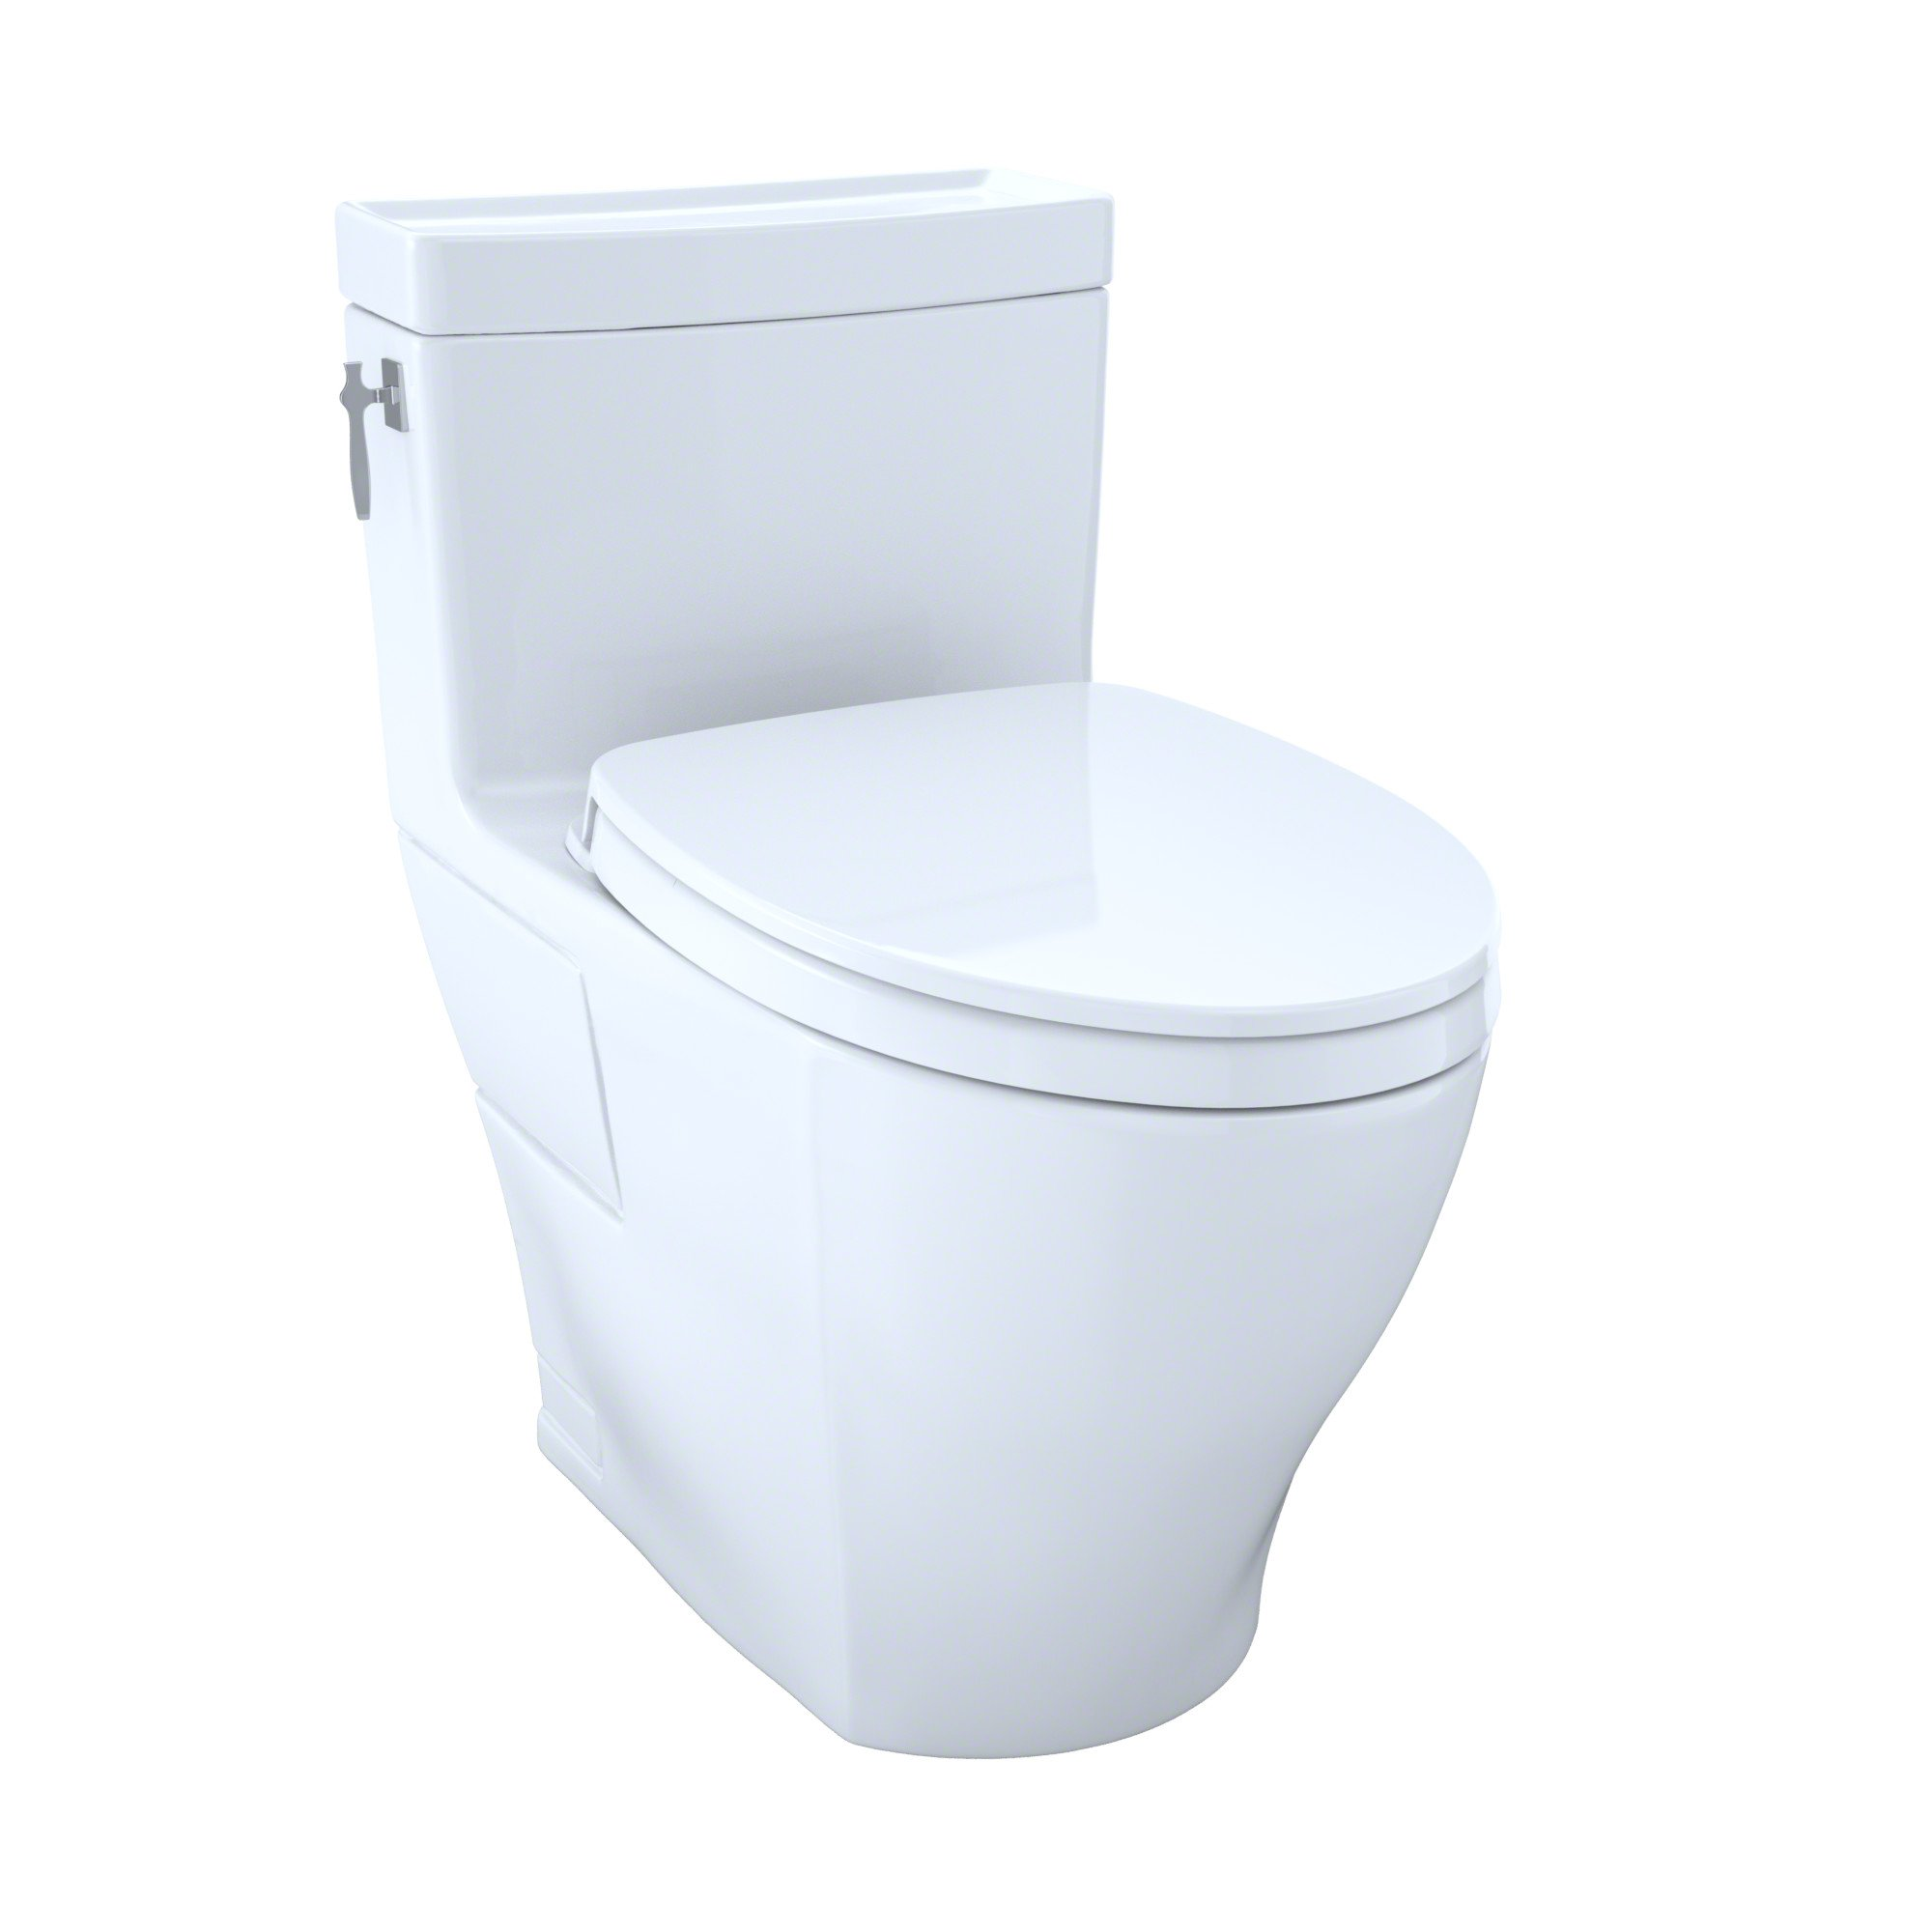 TOTO MS626124CEFG#01 Aimes Washlet+ One-Piece Elongated 1.28 Gpf Universal Height Skirted Toilet with Cefiontect, Cotton White